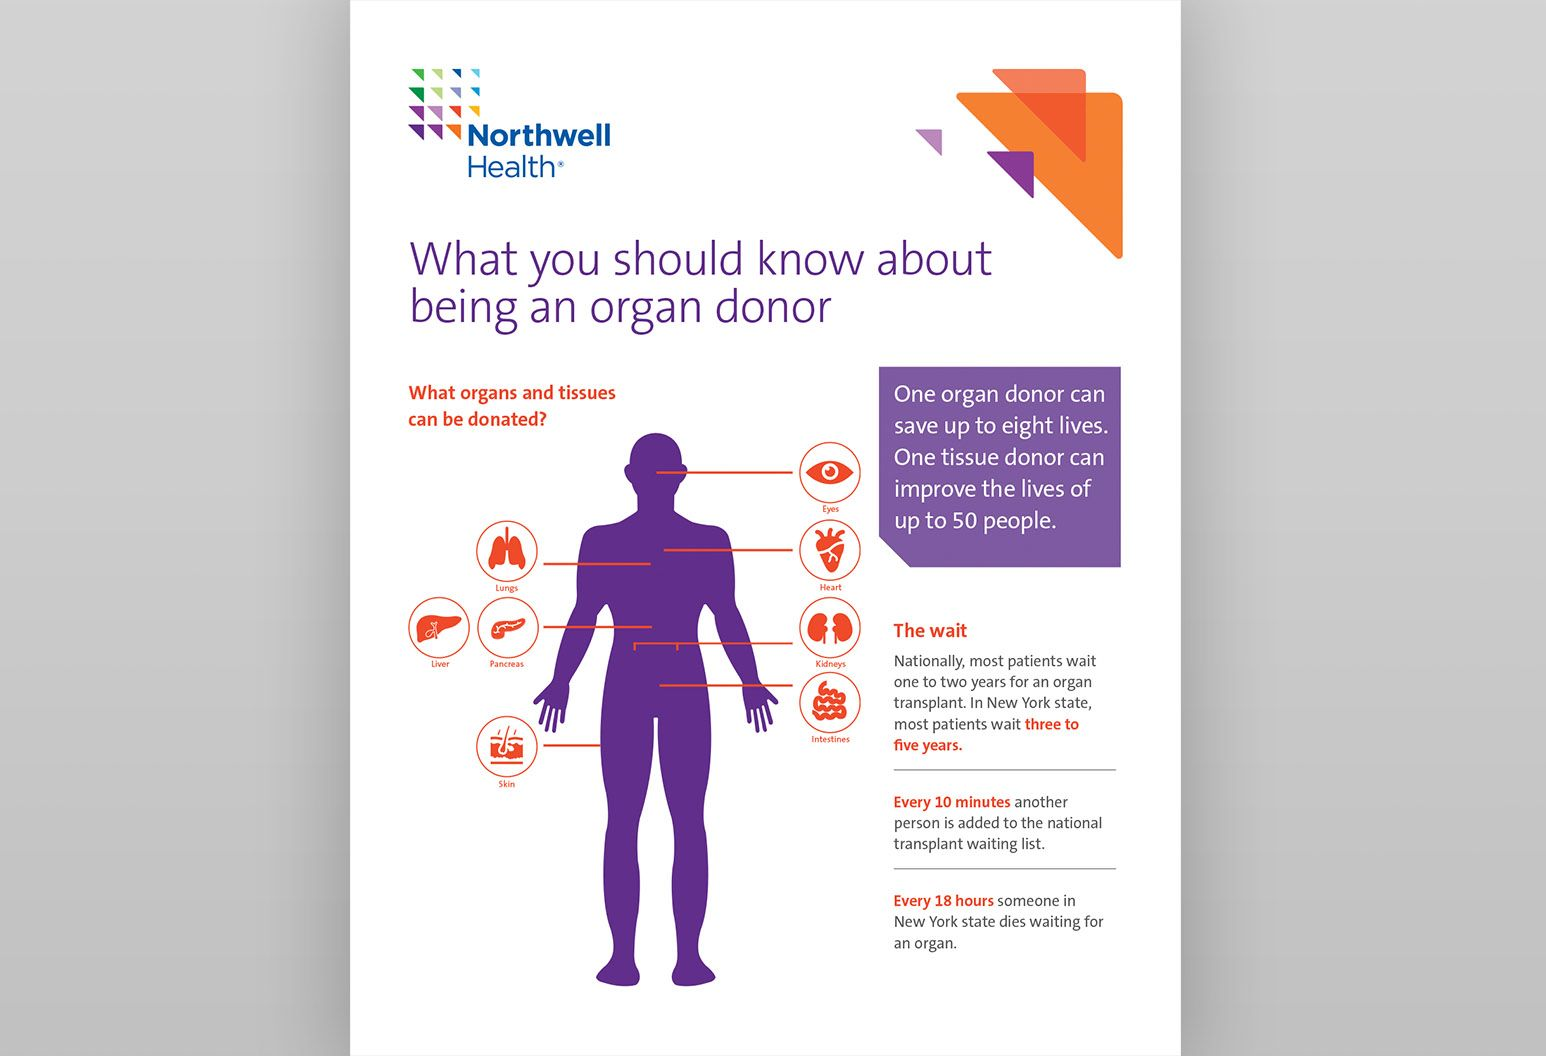 white background has purple image of human body with arrows pointing to organs that can be donated. Heading reads: what you should know about being an organ donor